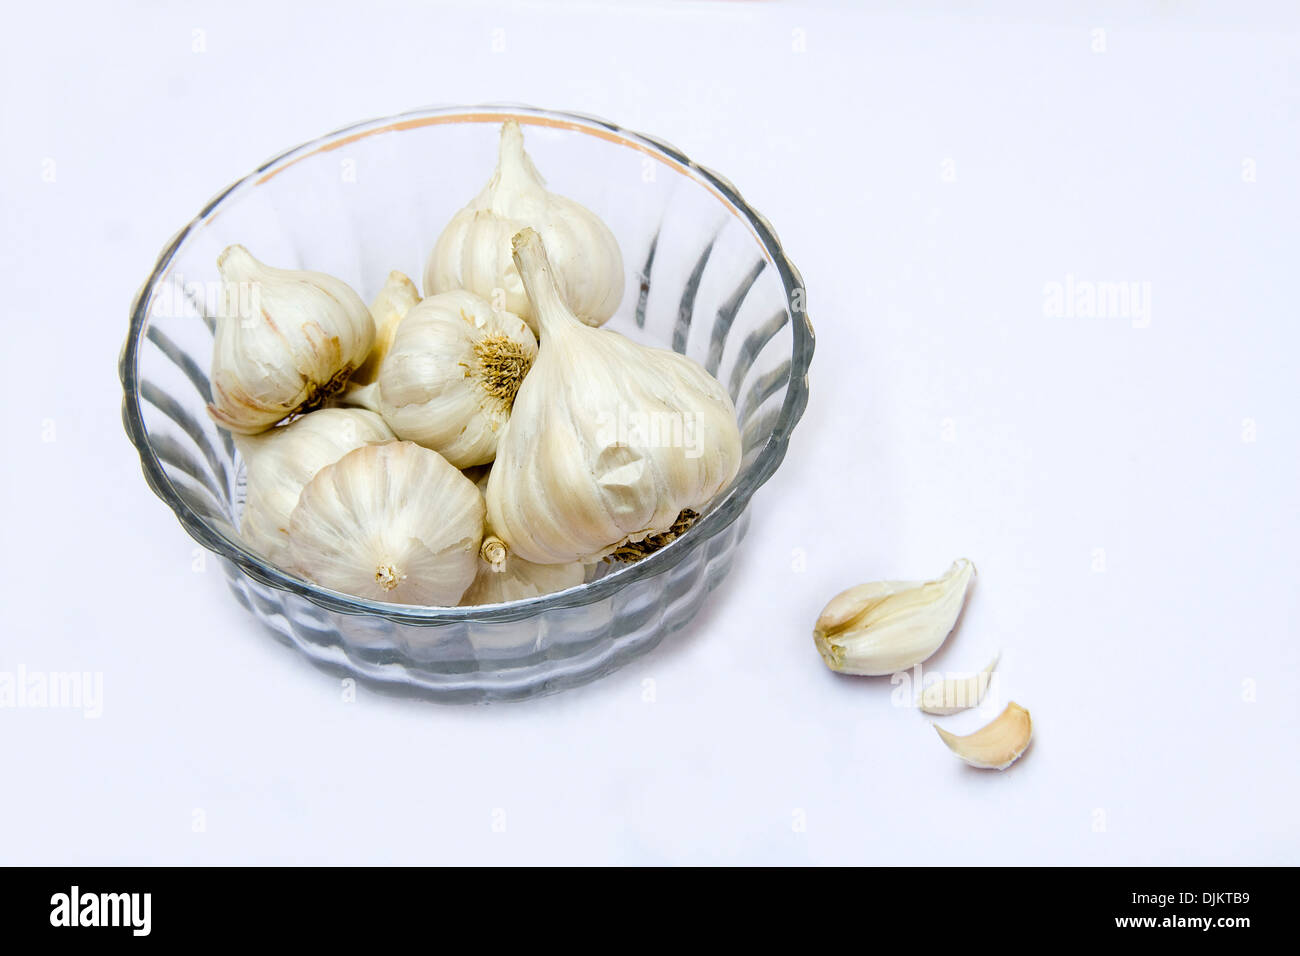 Strong-smelling, pungent-tasting bulbs of garlic used as flavoring in cookery - Stock Image